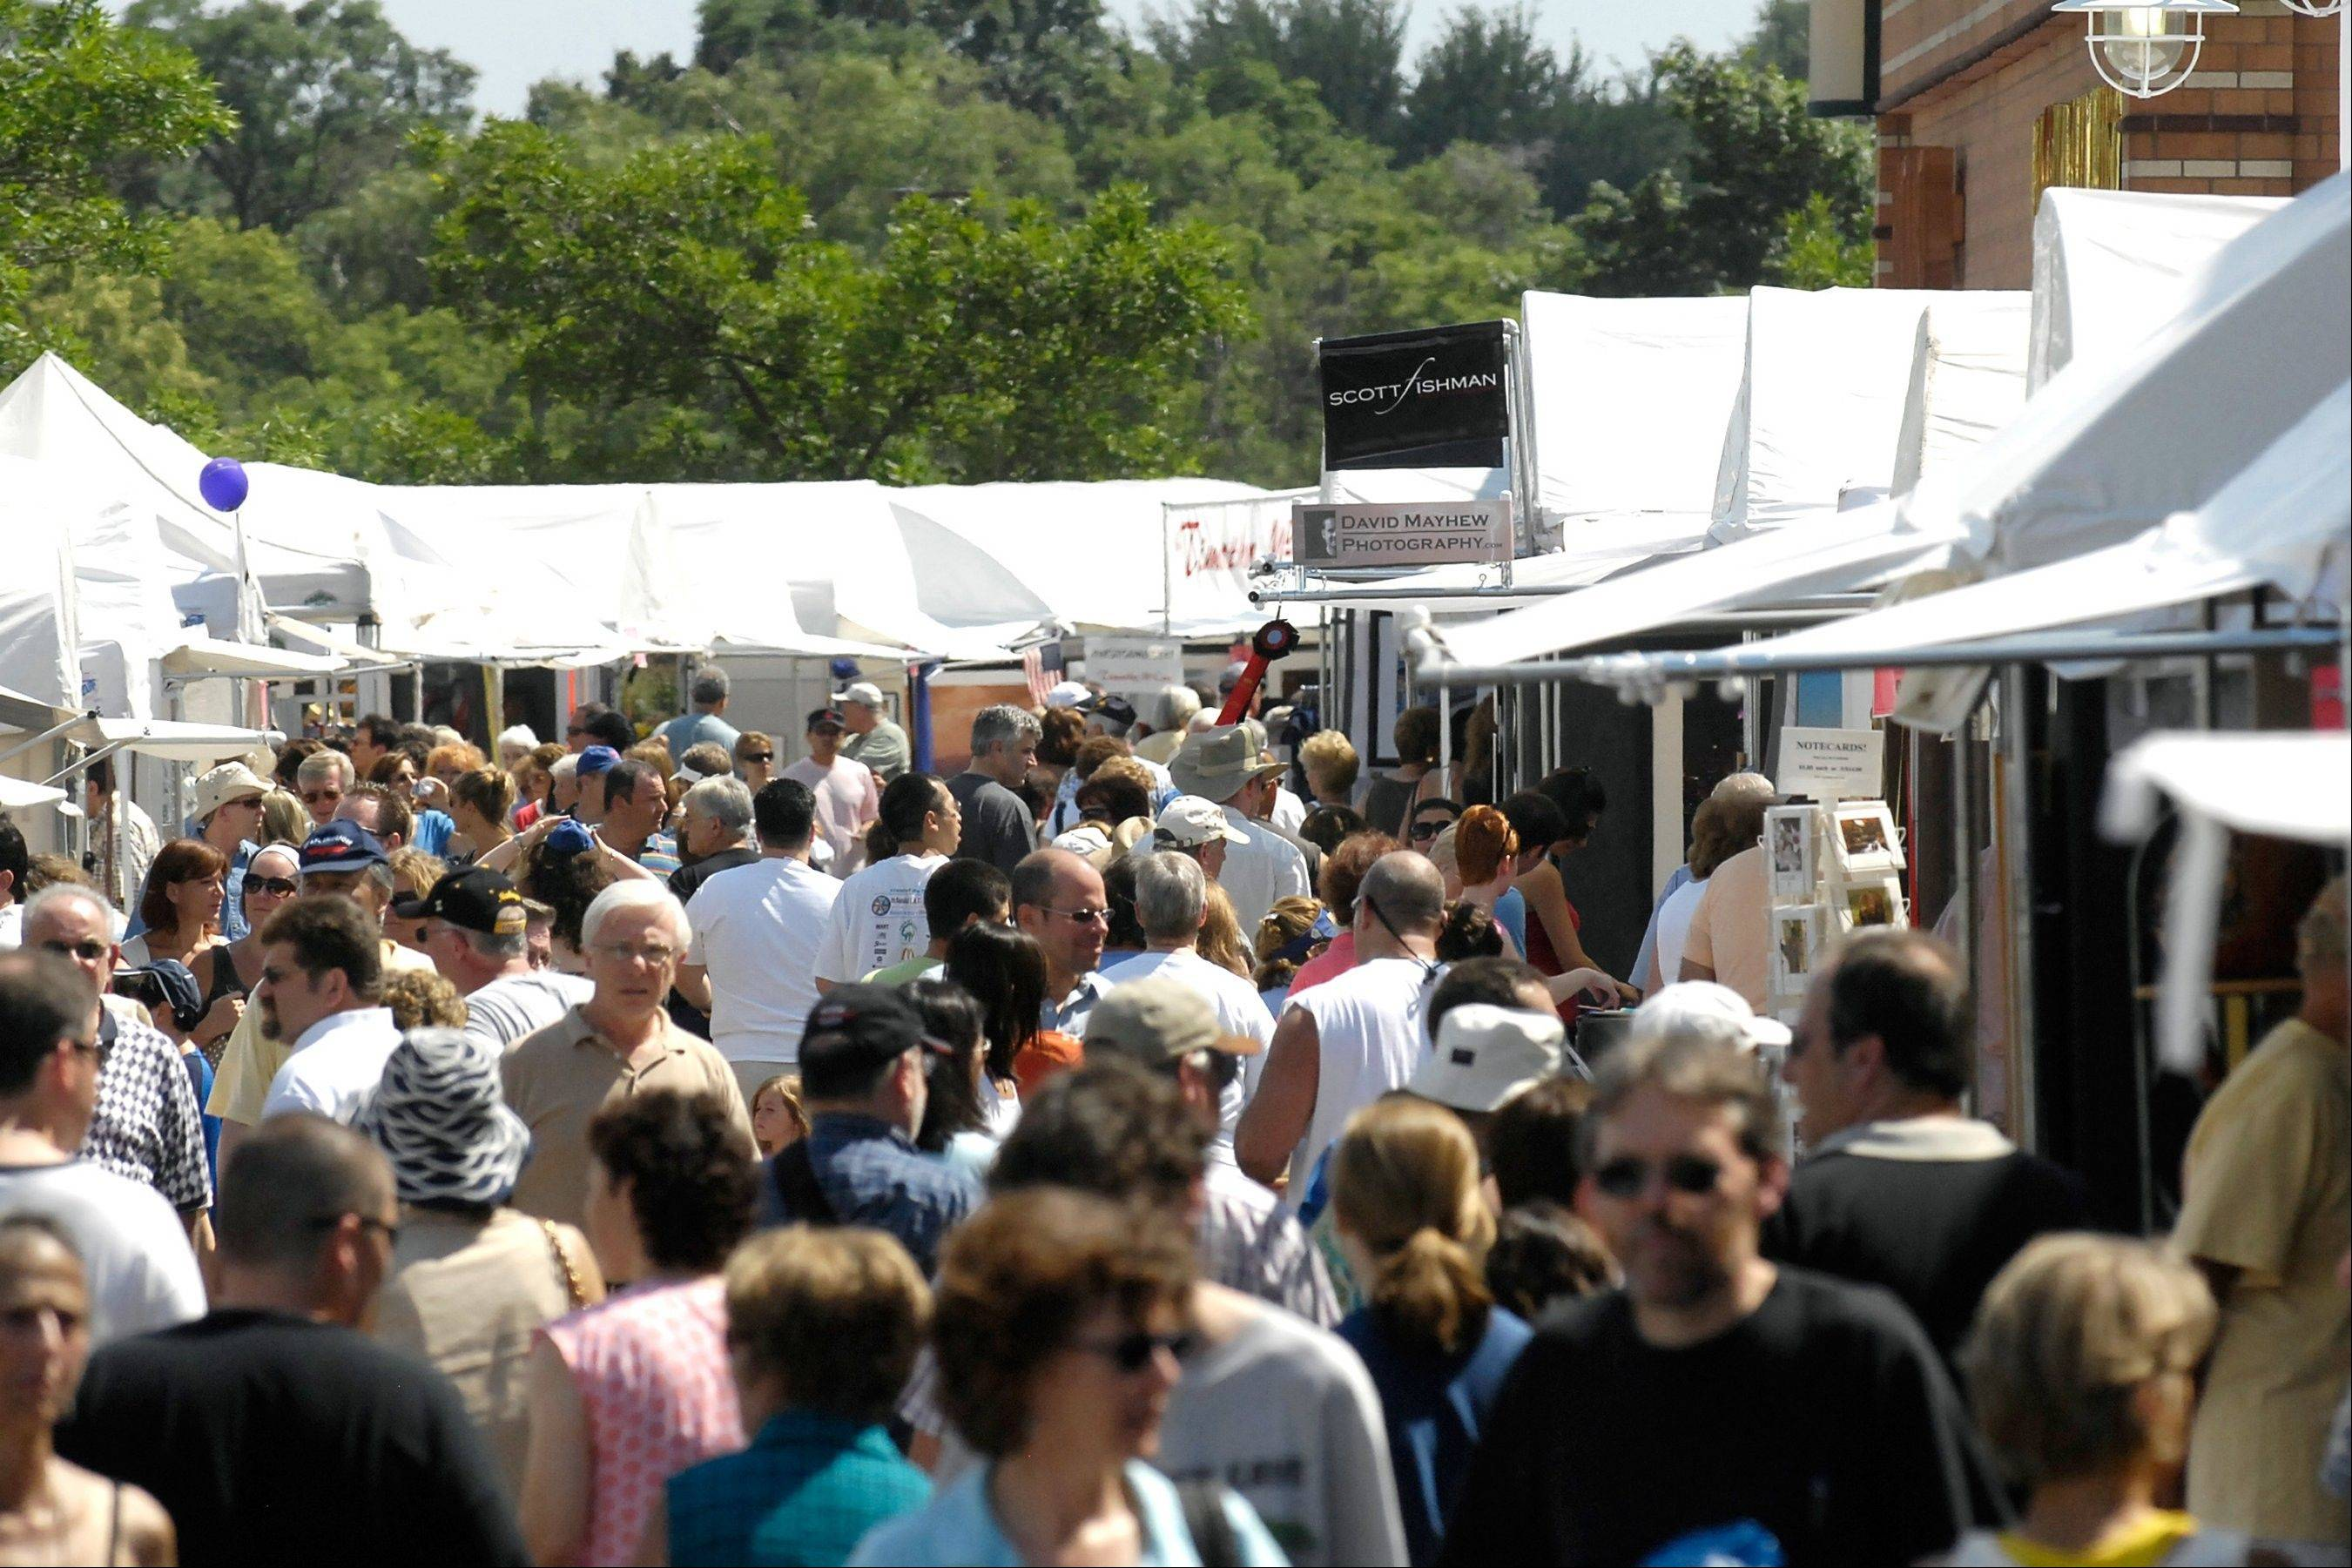 The Buffalo Grove Arts Festival is one of the most well-attended arts fests in the suburbs.